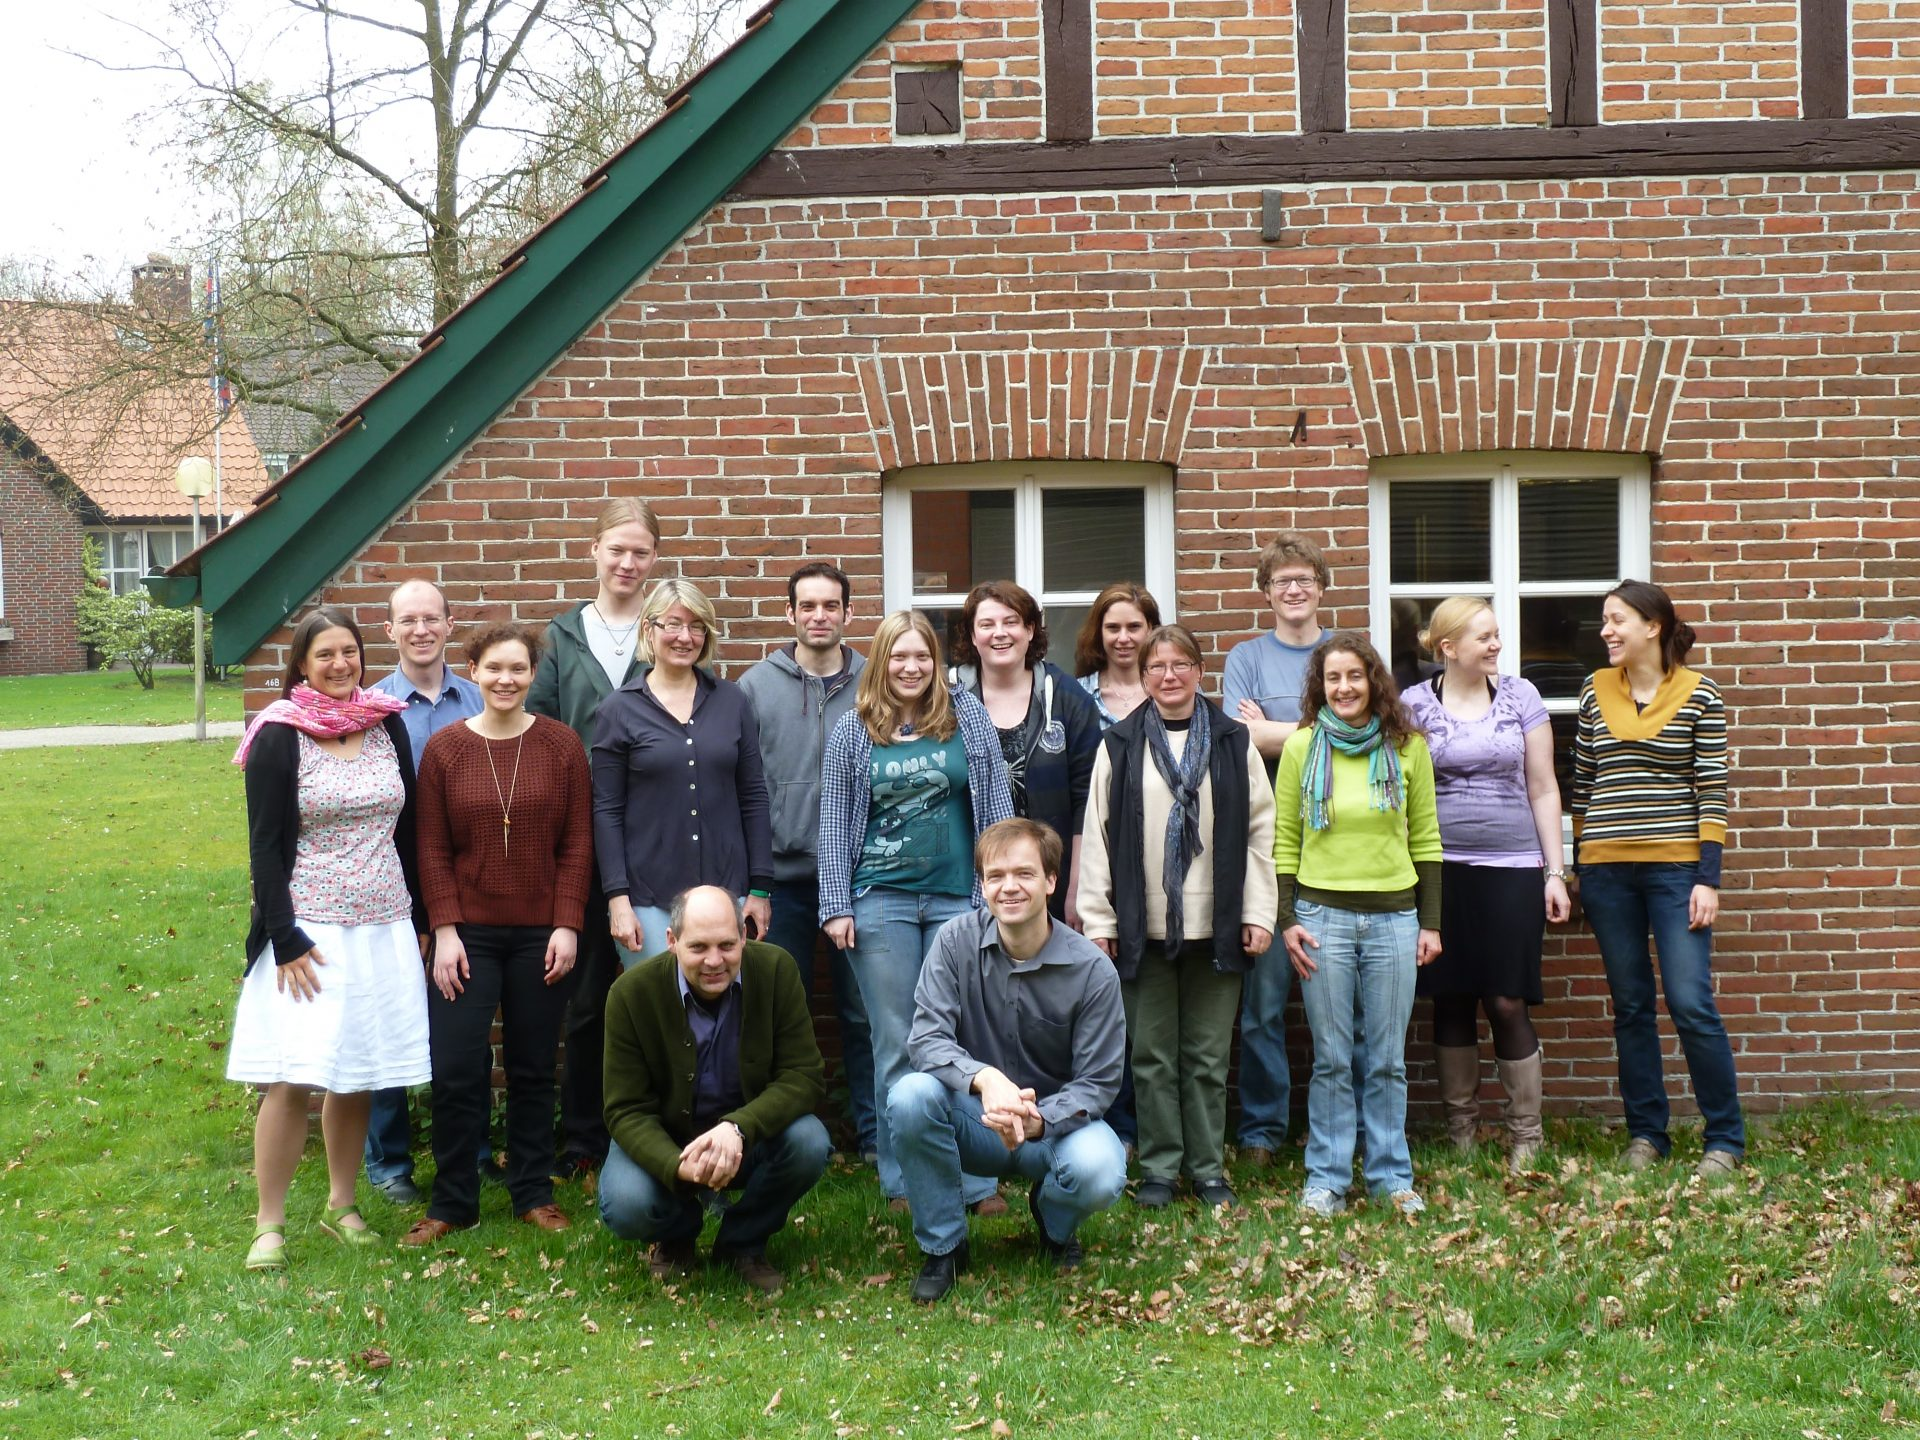 Photo of Dirk Albach's working group, outside our office and lab space at the Universtiy of Oldenburg, May 2013. Standing, left to right, Heidi Meudt, Eike Mayland-Quellhorst, Vera Mageney, Niklas Buhk, Katarzyna Palinska, Thomas Schmidt, Jane Looschen, Jennifer Nolzen, Lillian-Lee Müller, Imke Notholt, Simon Pfanzelt, Ute Friedrichs, Maria Brandes, Lena Koehler. In front, Bernhard von Hagen and Dirk Albach. Photo by Gerhard Zotz.